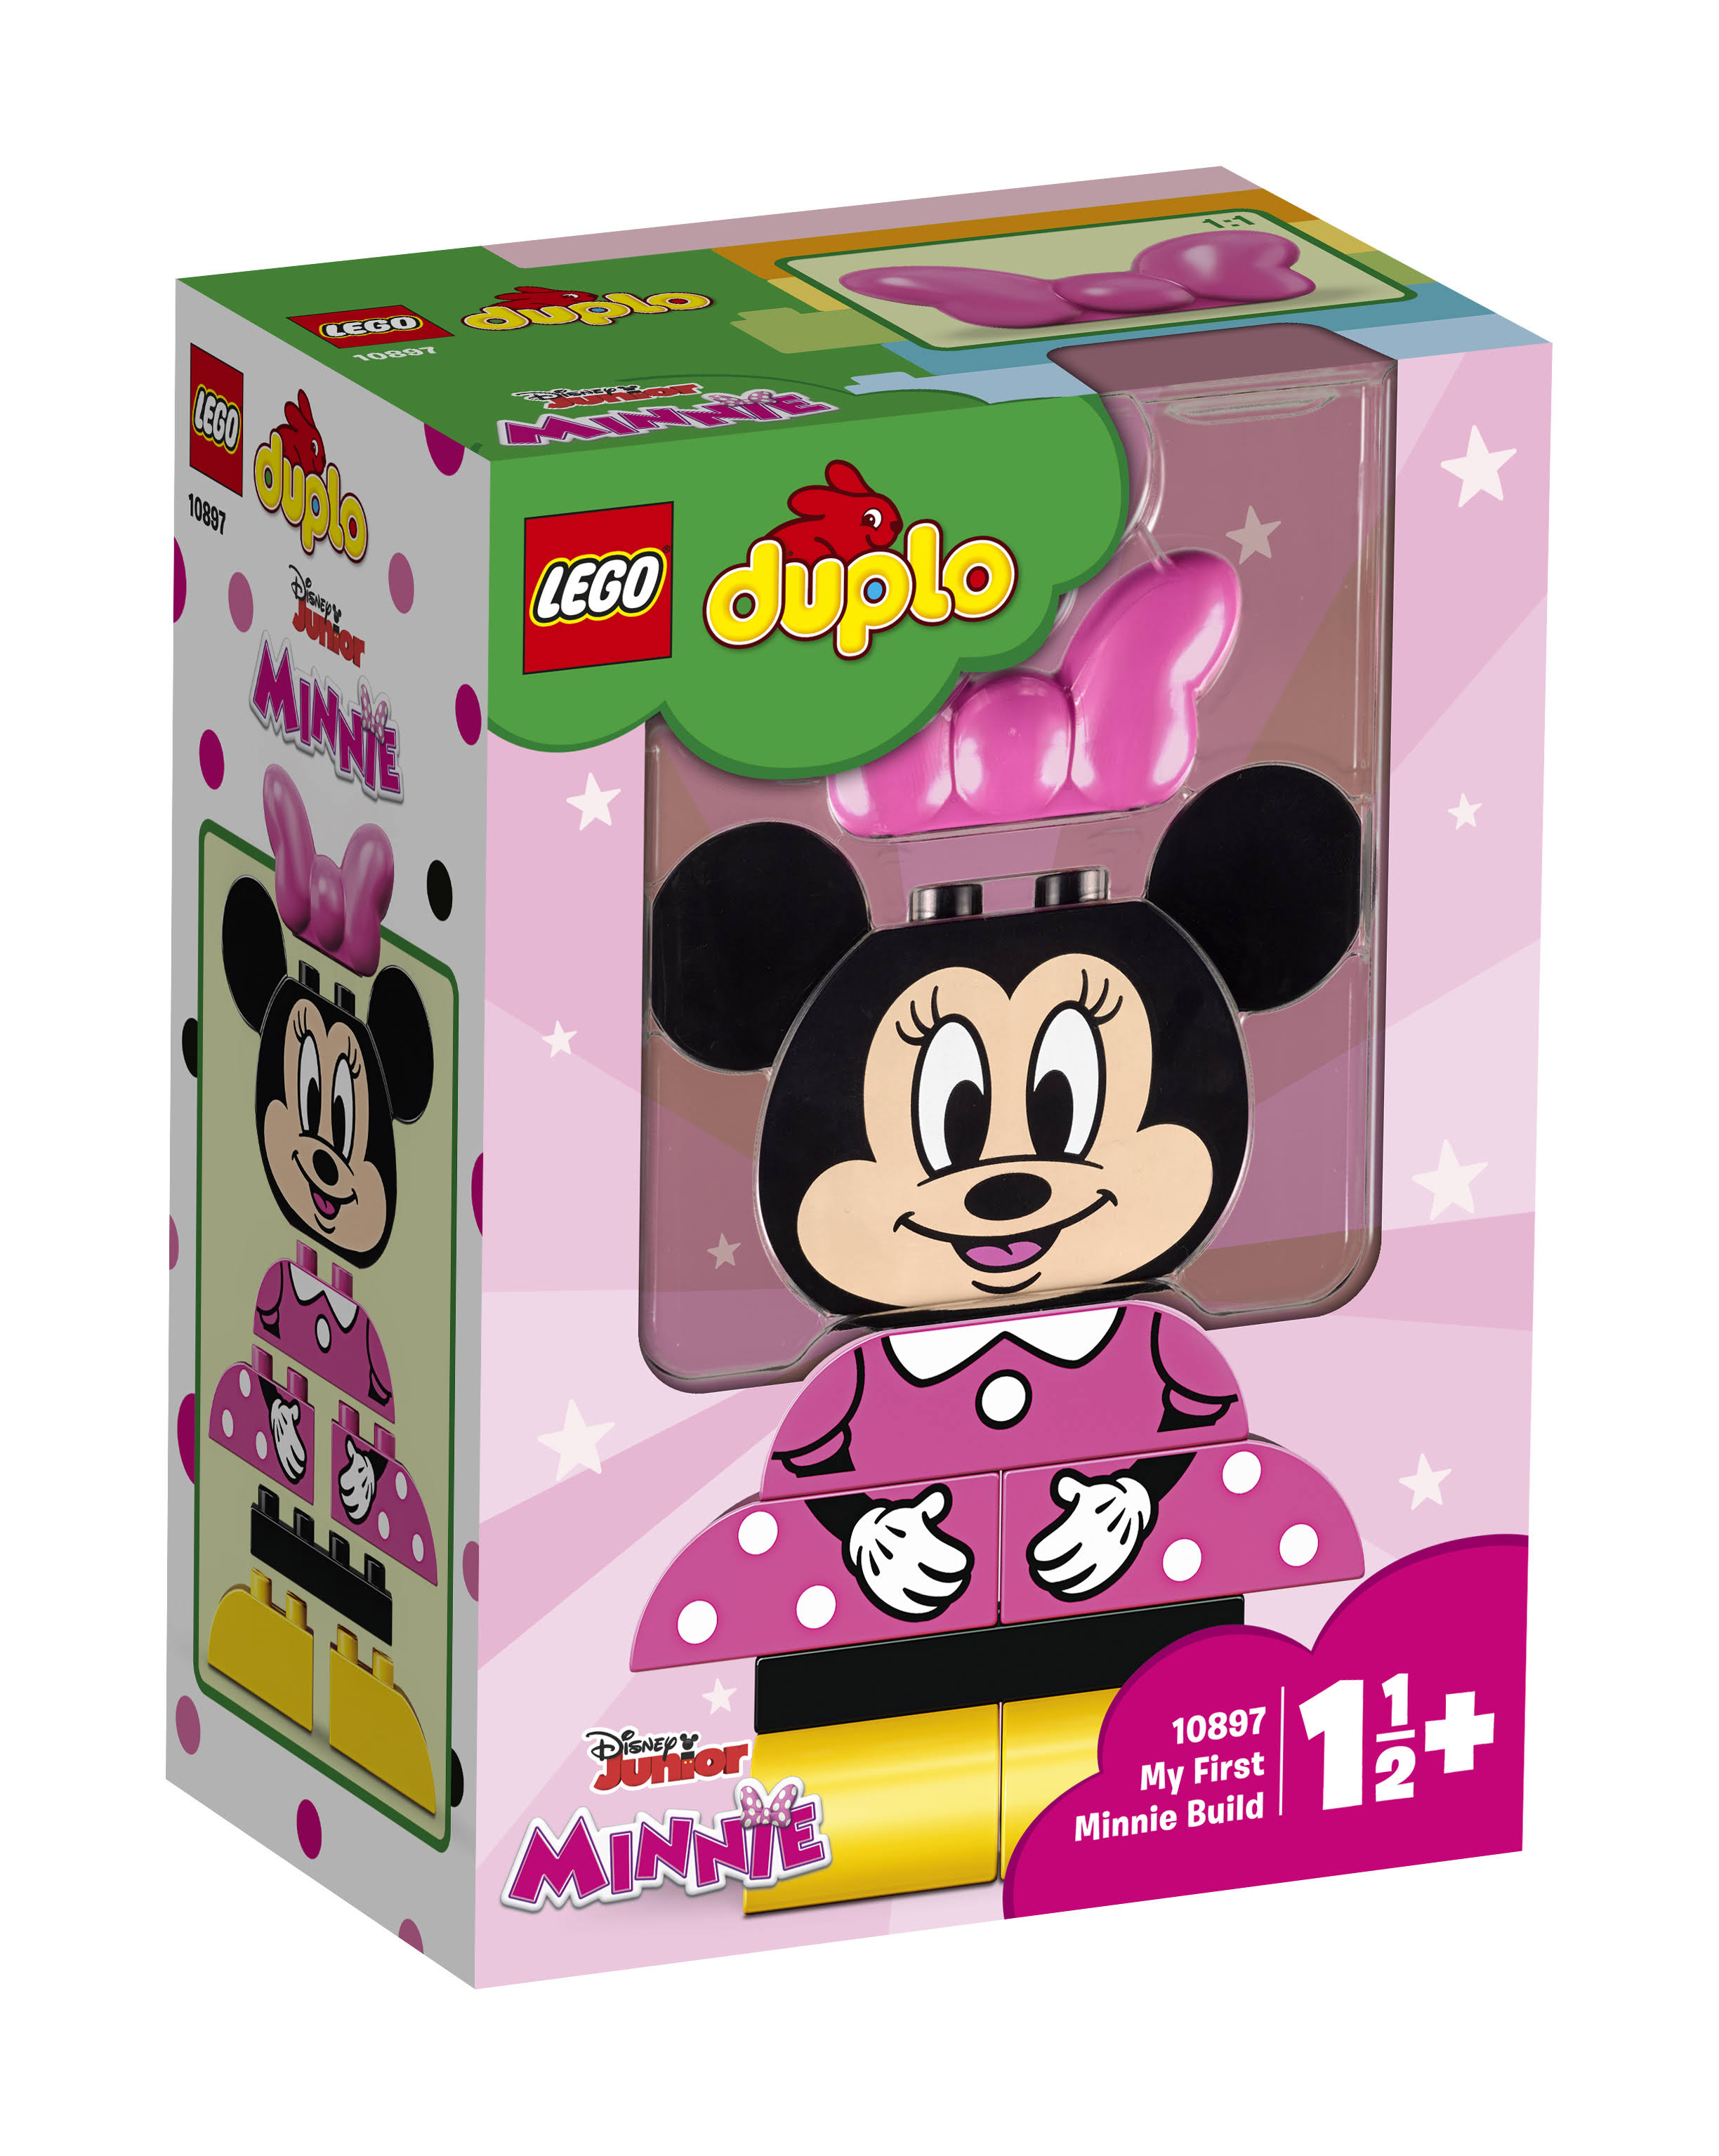 Lego 10897 Duplo My First Minnie Build Building Set